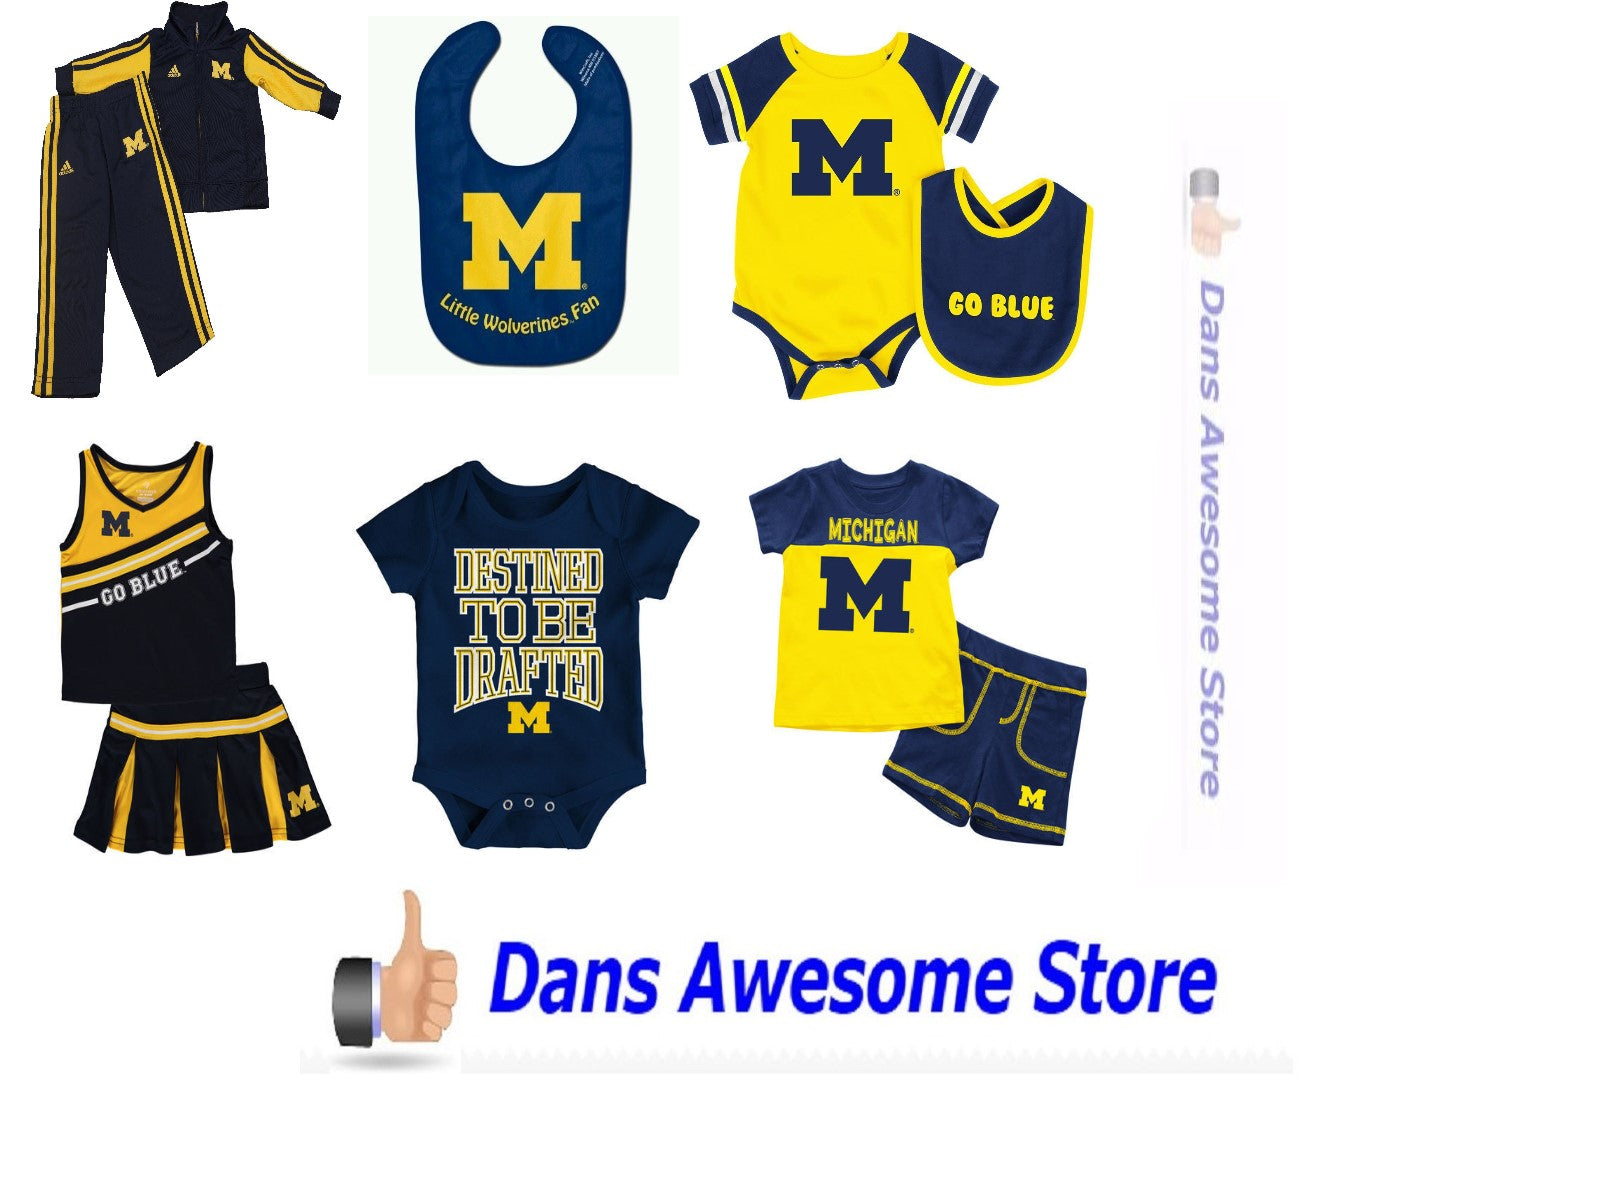 Michigan Wolverines All Babies - Dans Awesome Store